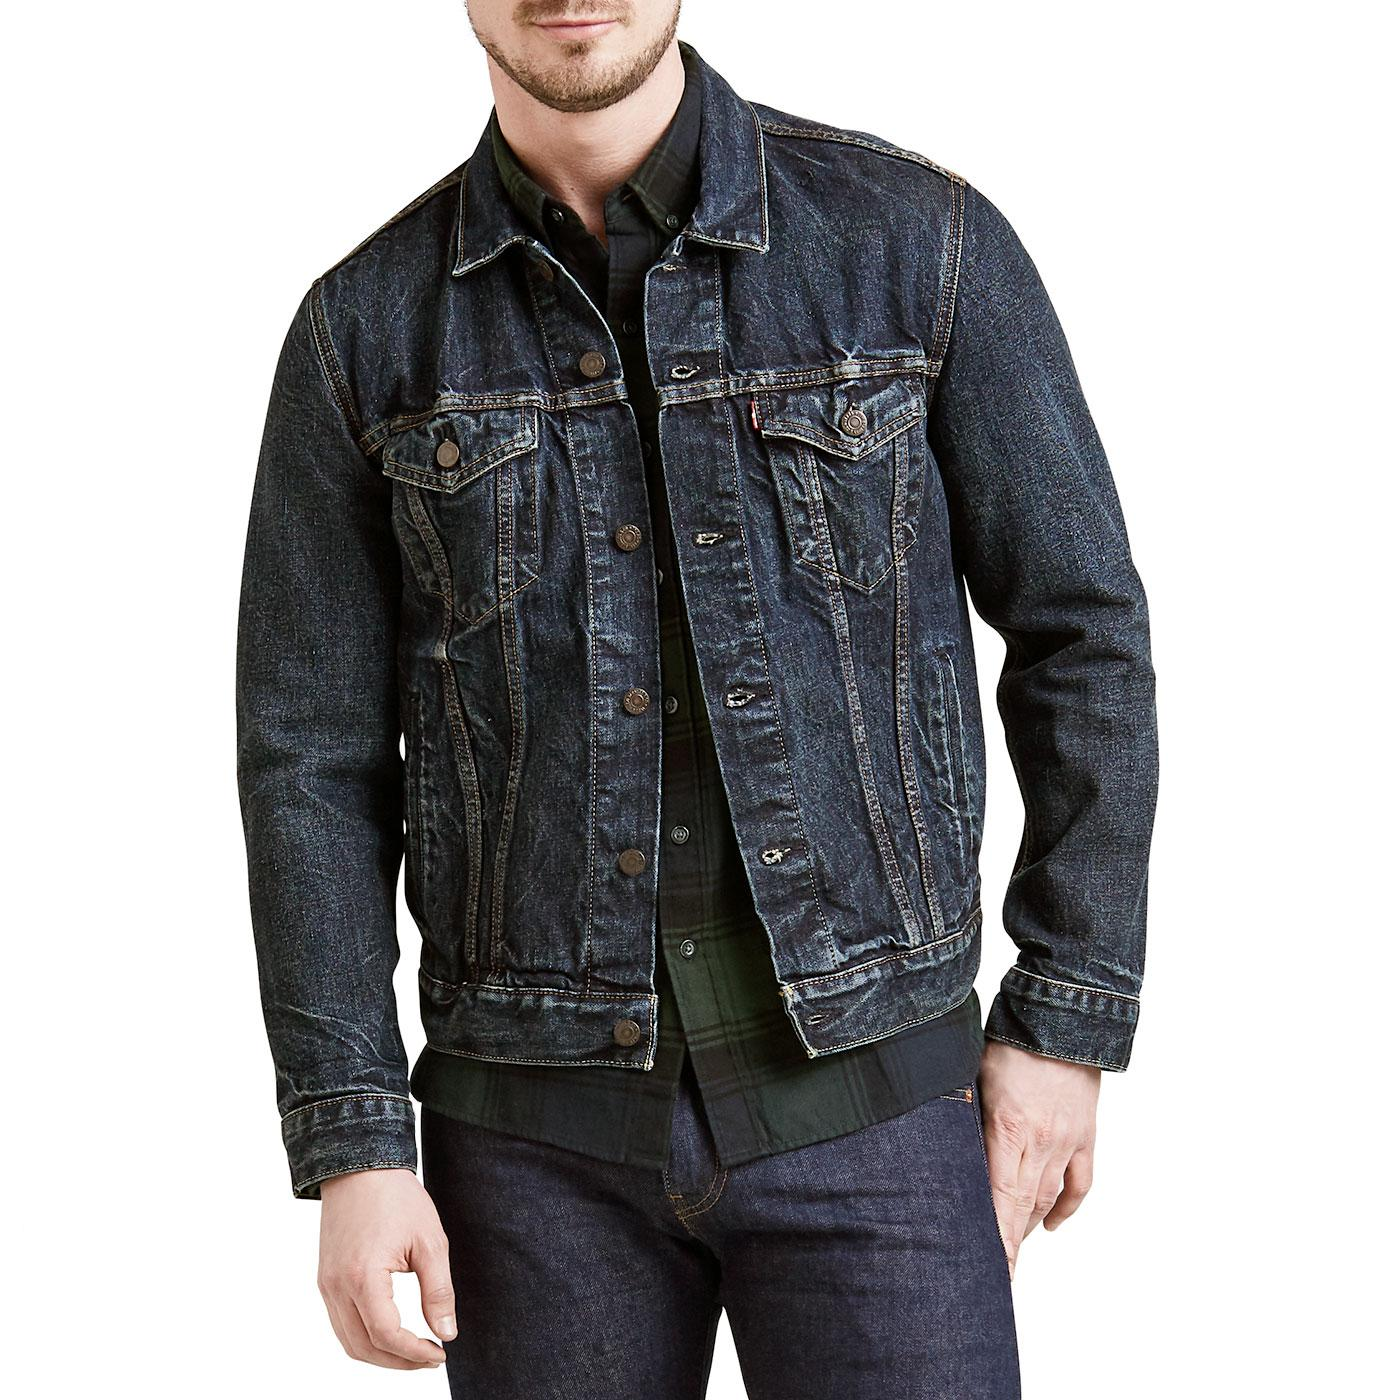 LEVI'S Men's Retro Indigo Denim Trucker Jacket BL